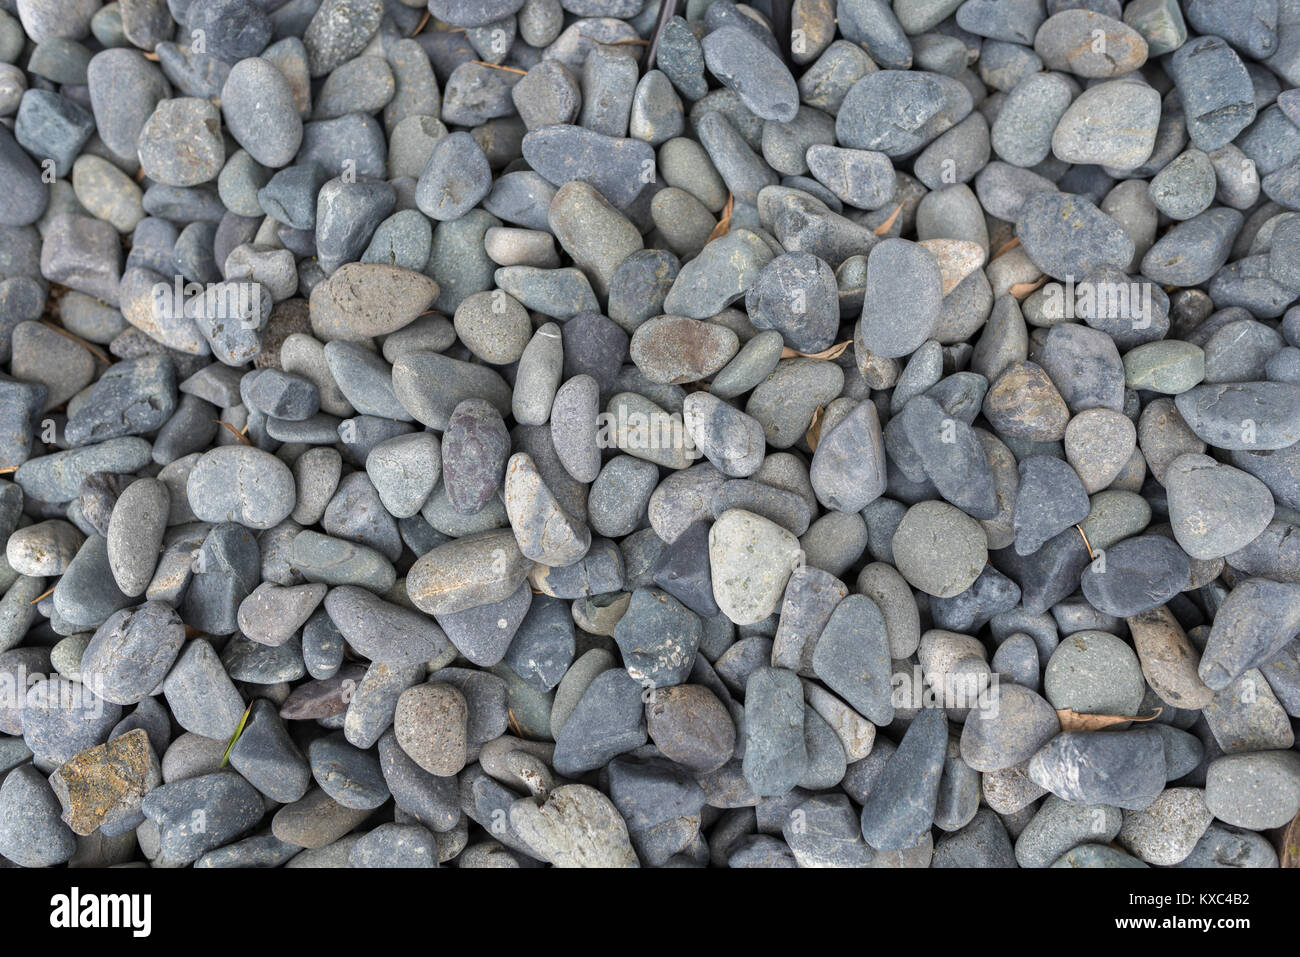 Grey River Stone Pebbles On Ground For Decorative Garden